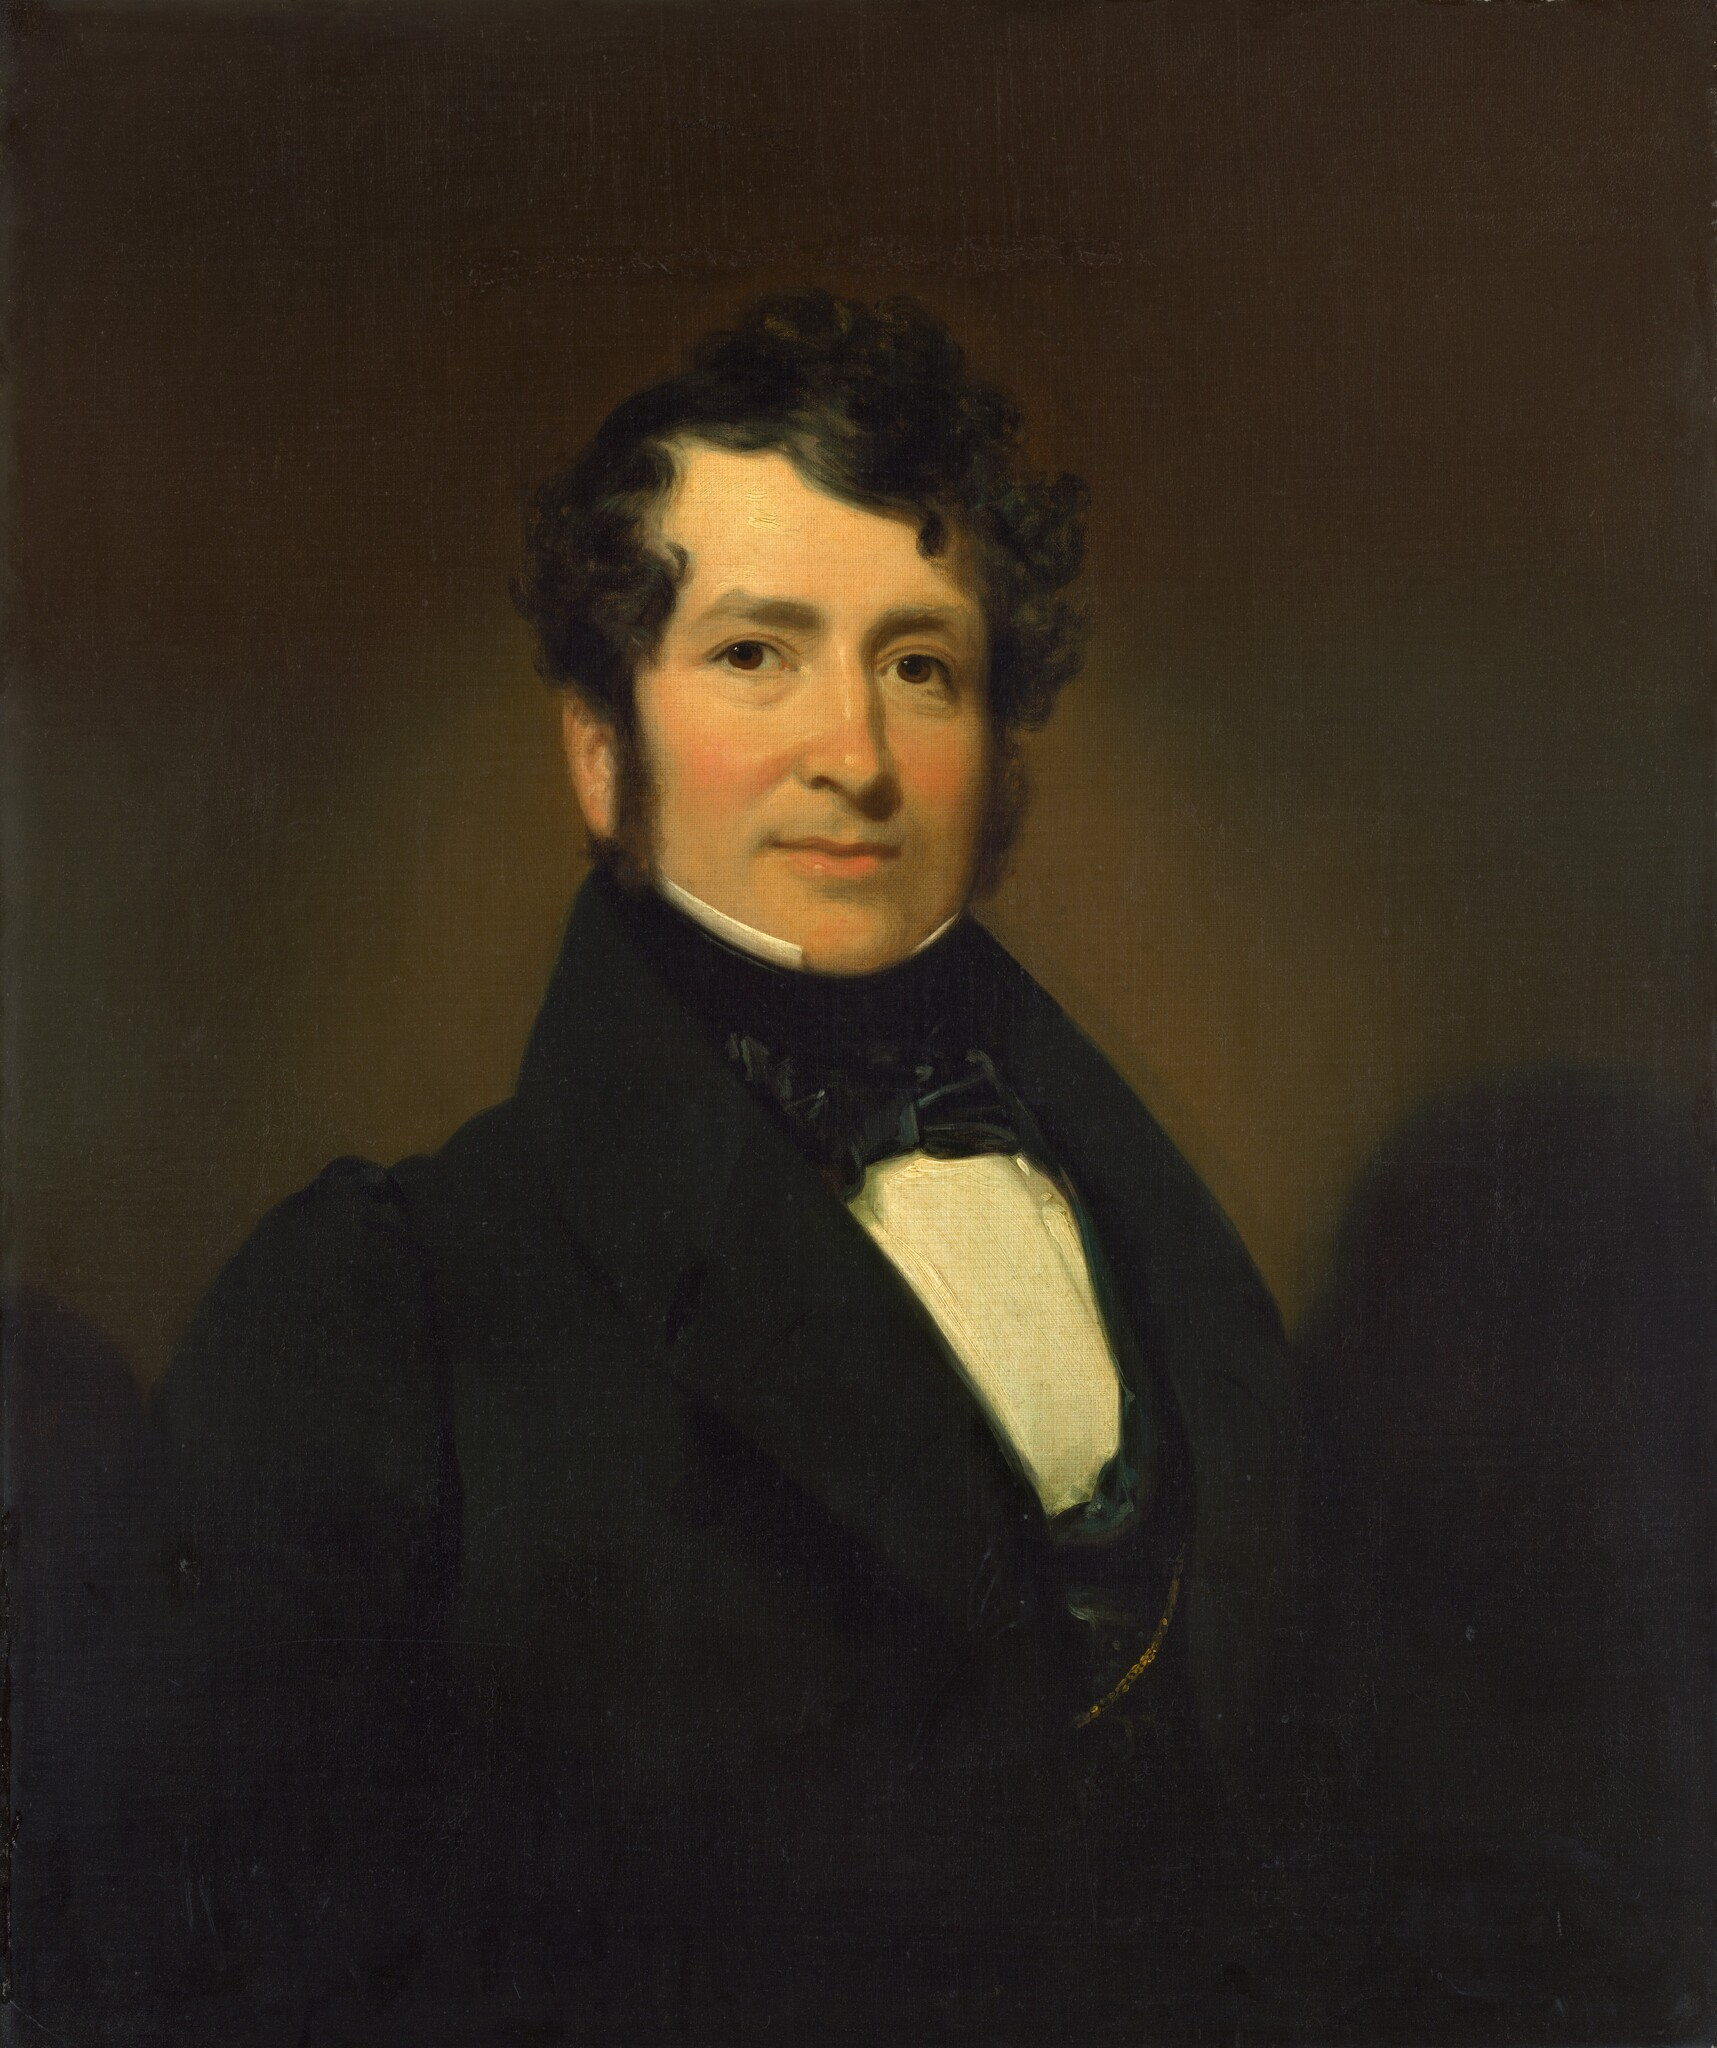 George Pope Morris, 1836, oil on canvas by [[Henry Inman (painter)|Henry Inman]]